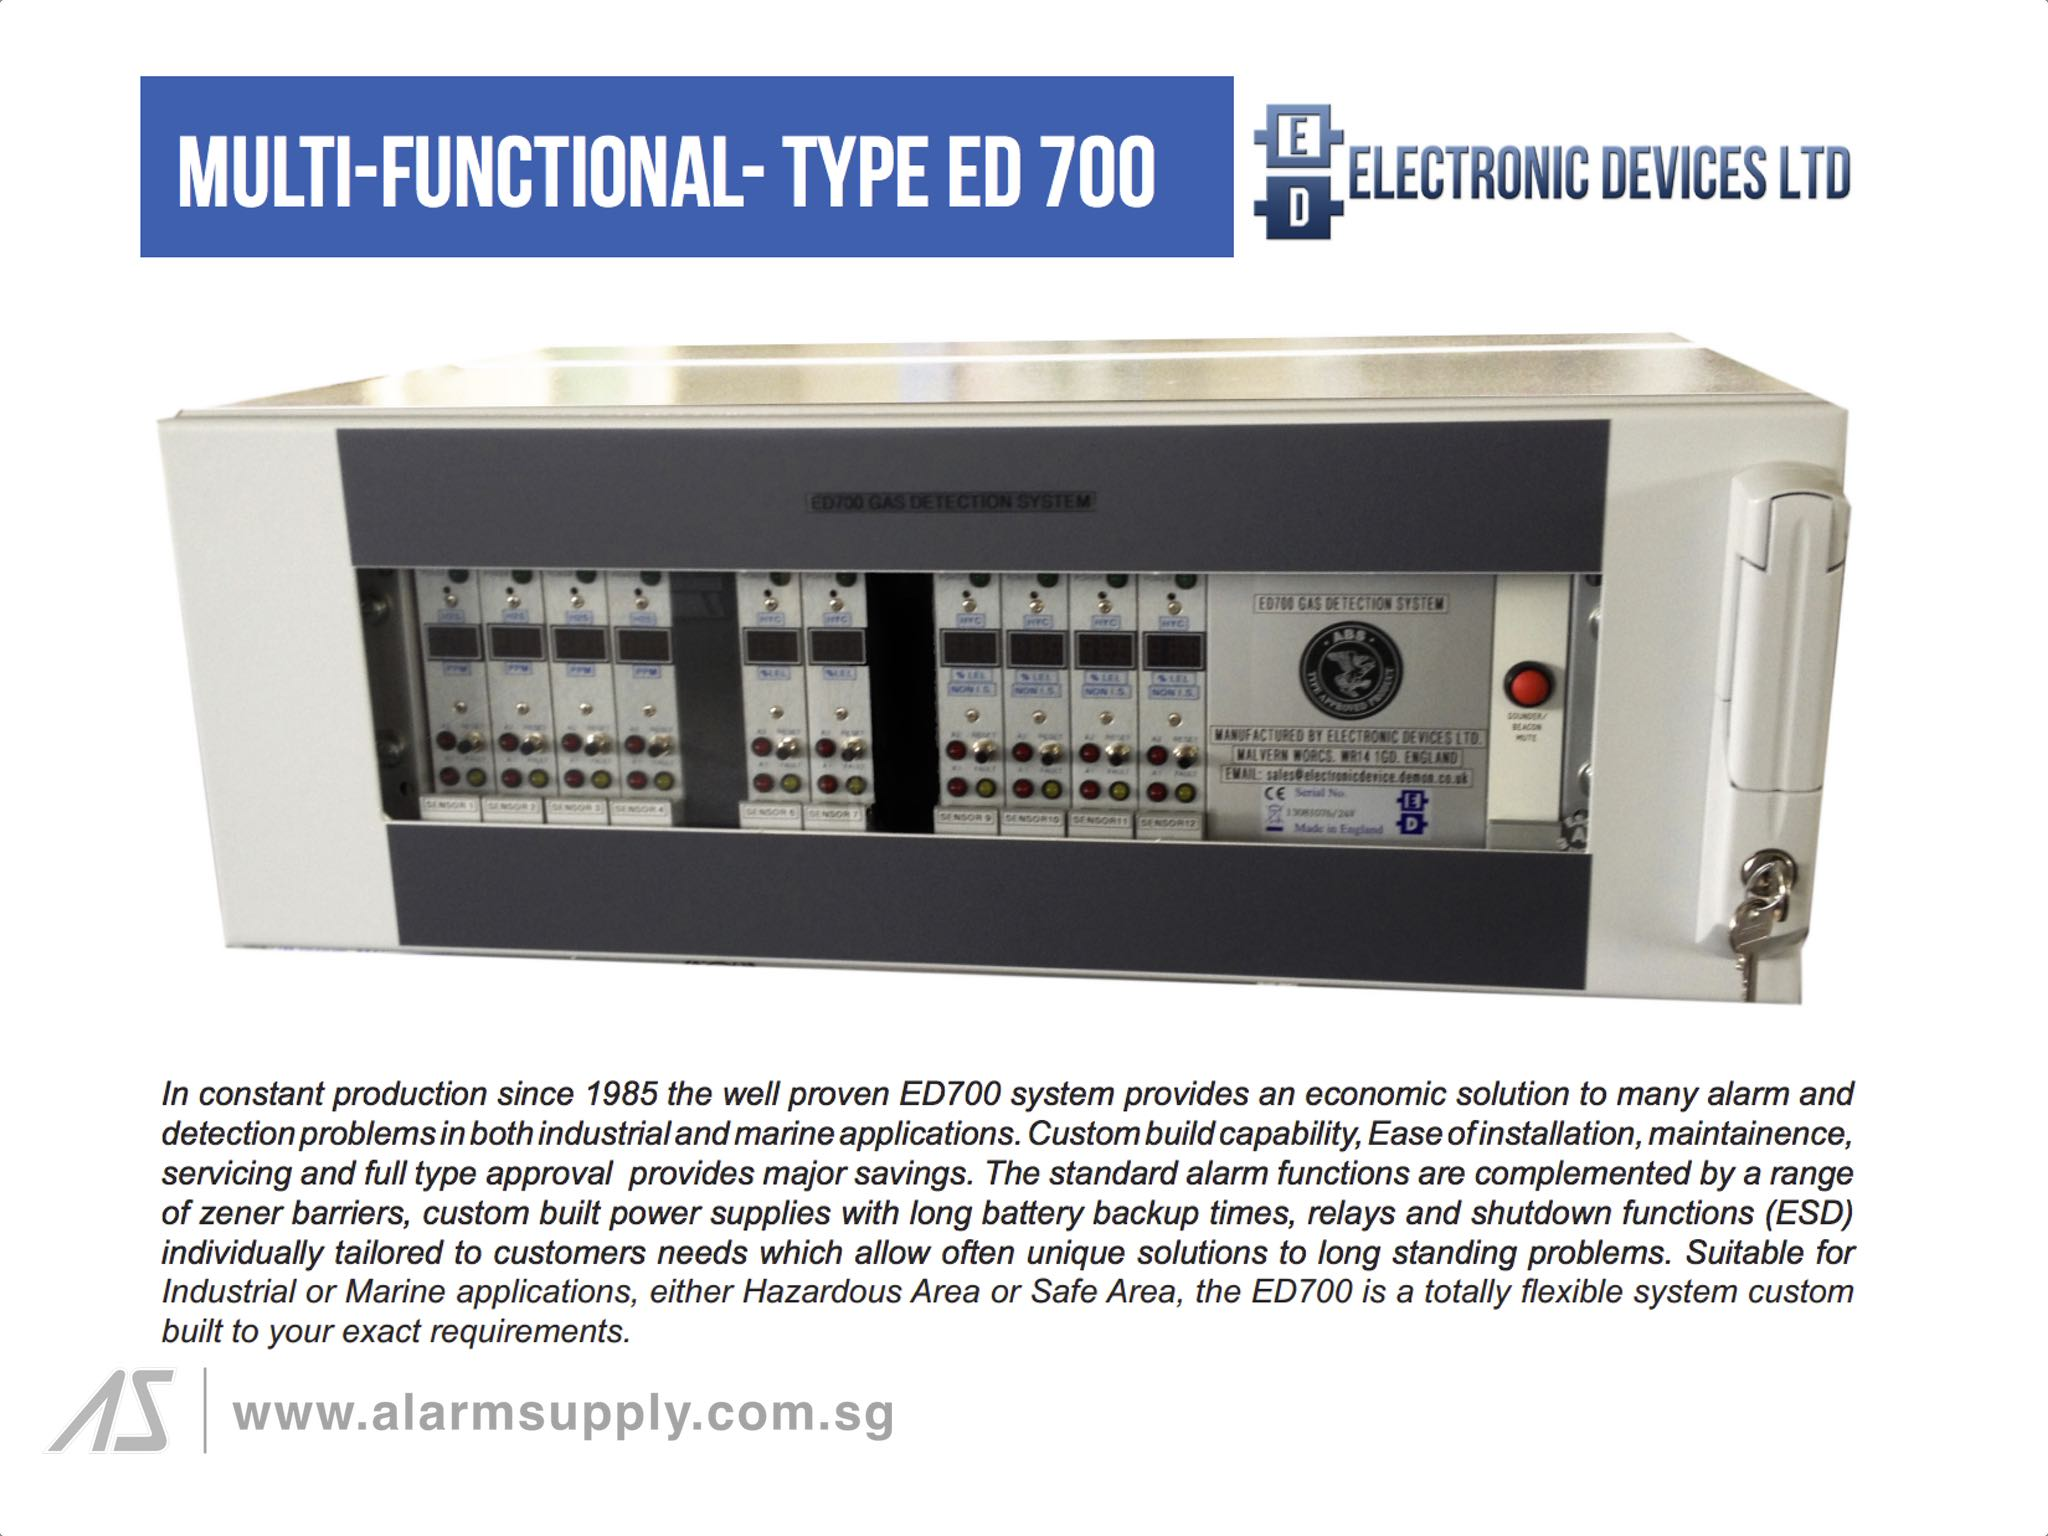 Alarm Supply Pte Ltd Electronic Devices Limited